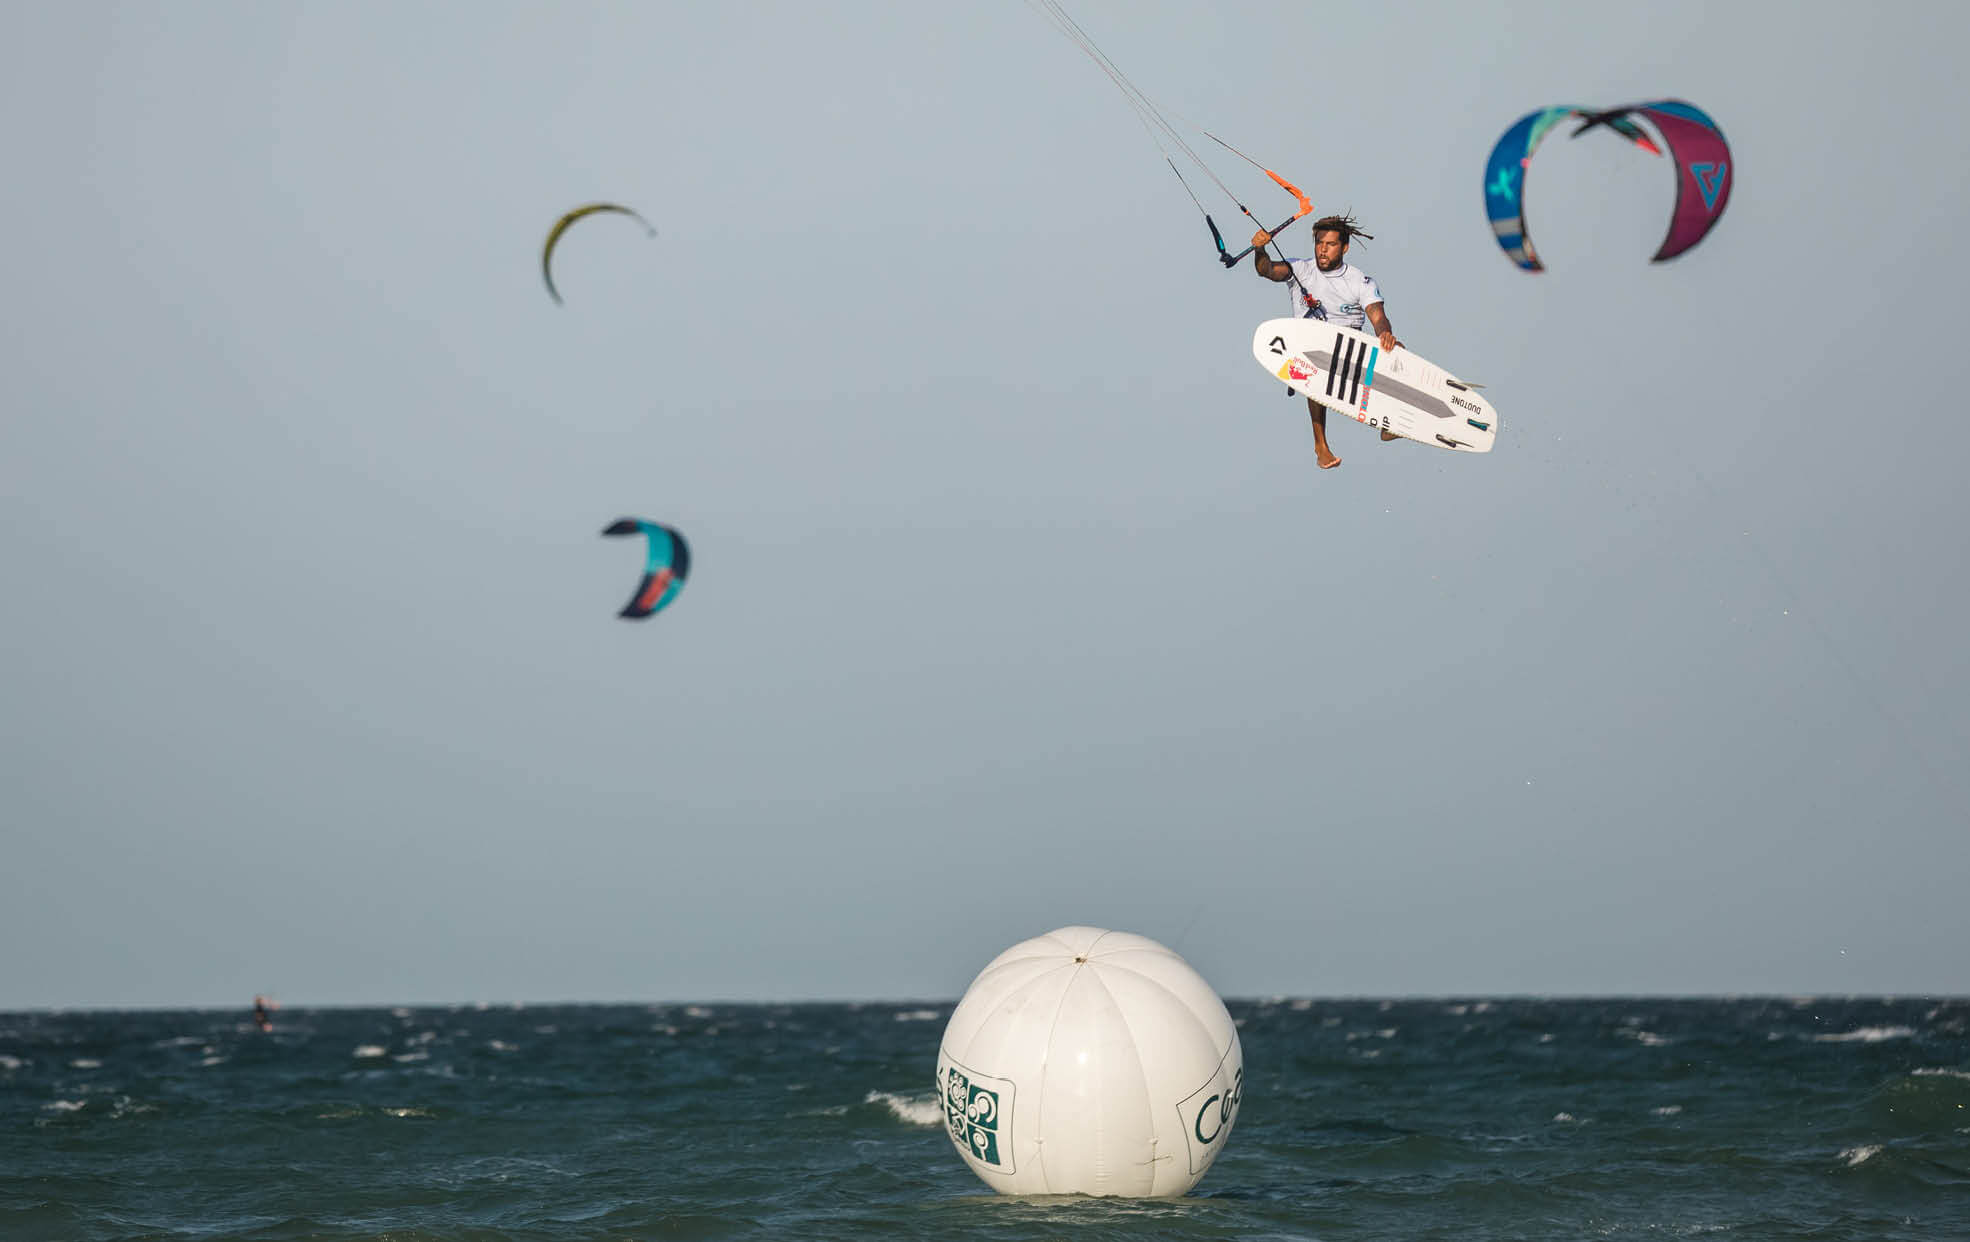 Duotone Kiteboarding Airton Cozzolino World Champion